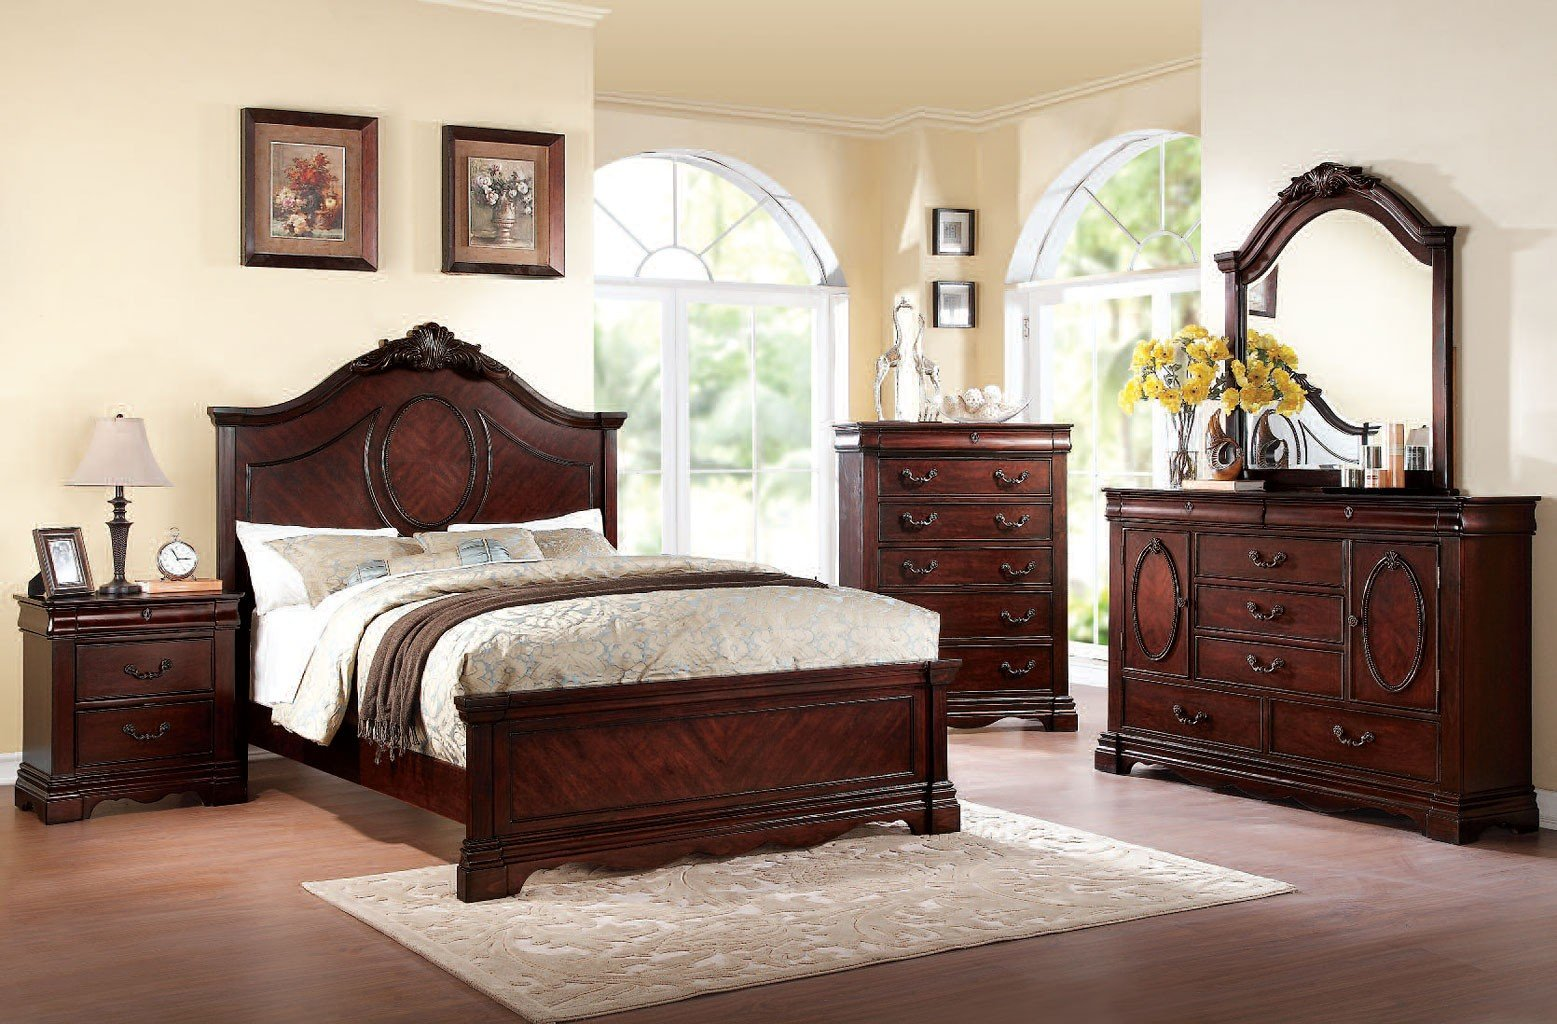 Beverly Bedroom Set W/ Estrella Bed Acme Furniture